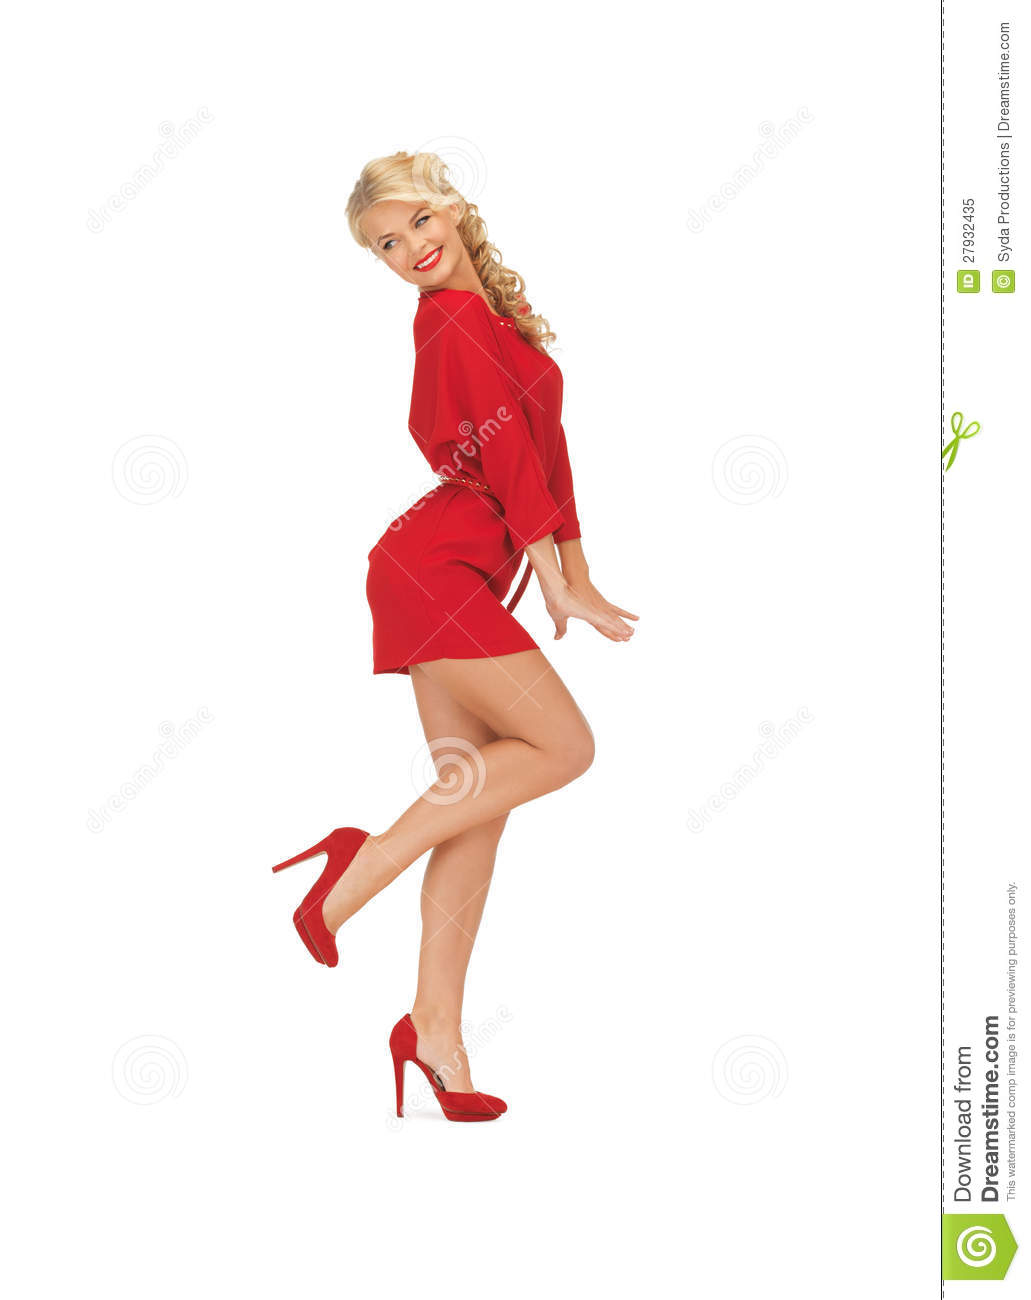 dc8b7add6661 Dancing Lovely Woman In Red Dress Stock Image - Image of fashion ...